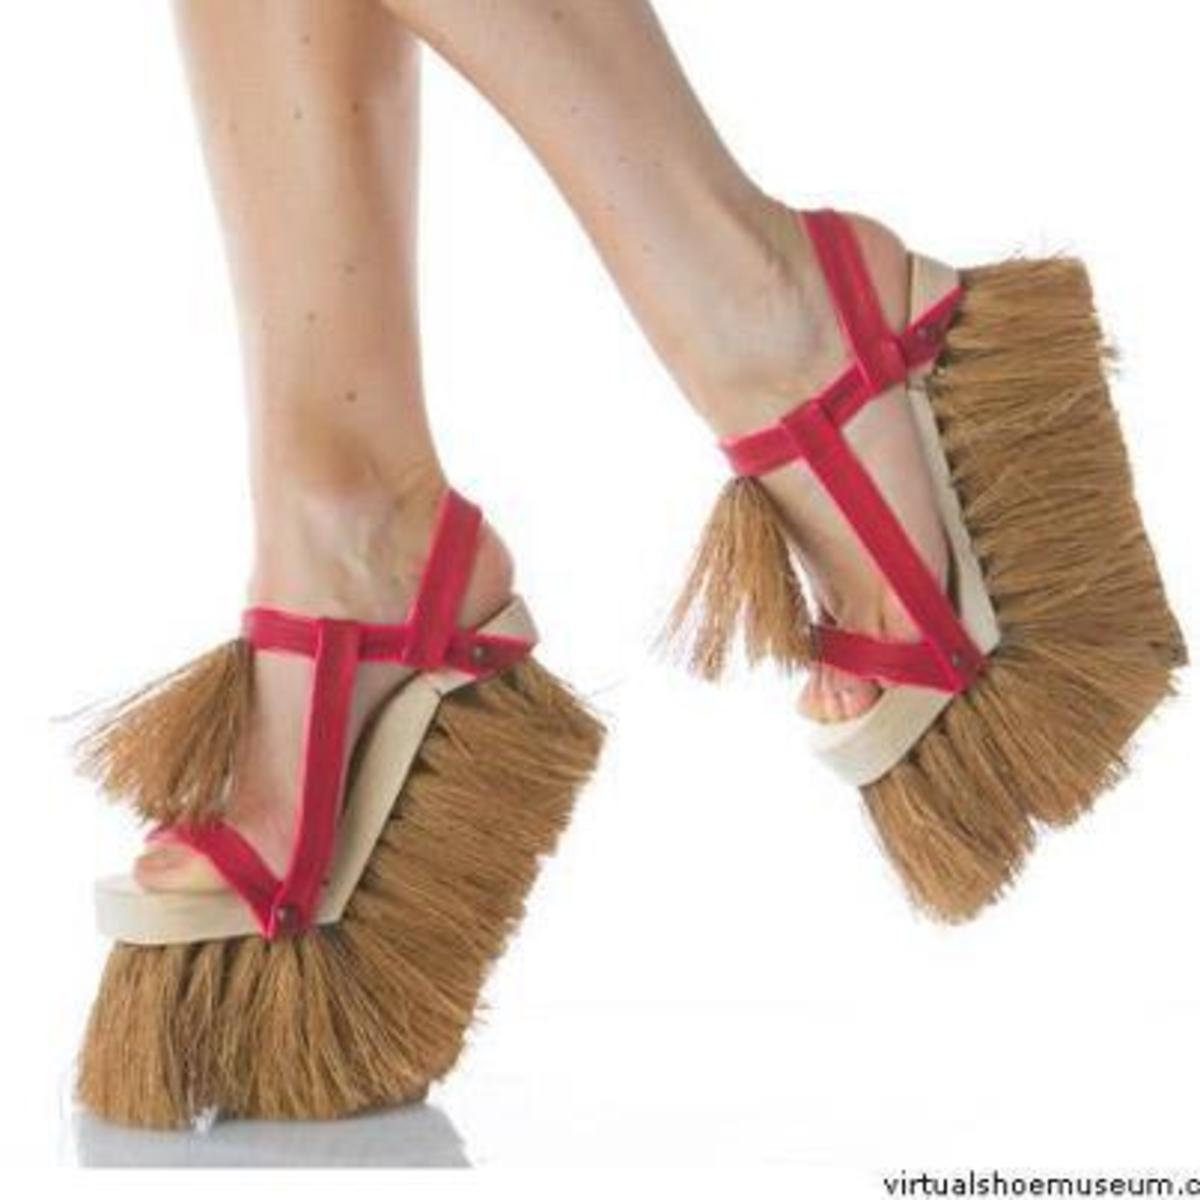 Taking the mop slipper to a new level. The brush heel, good for corners...